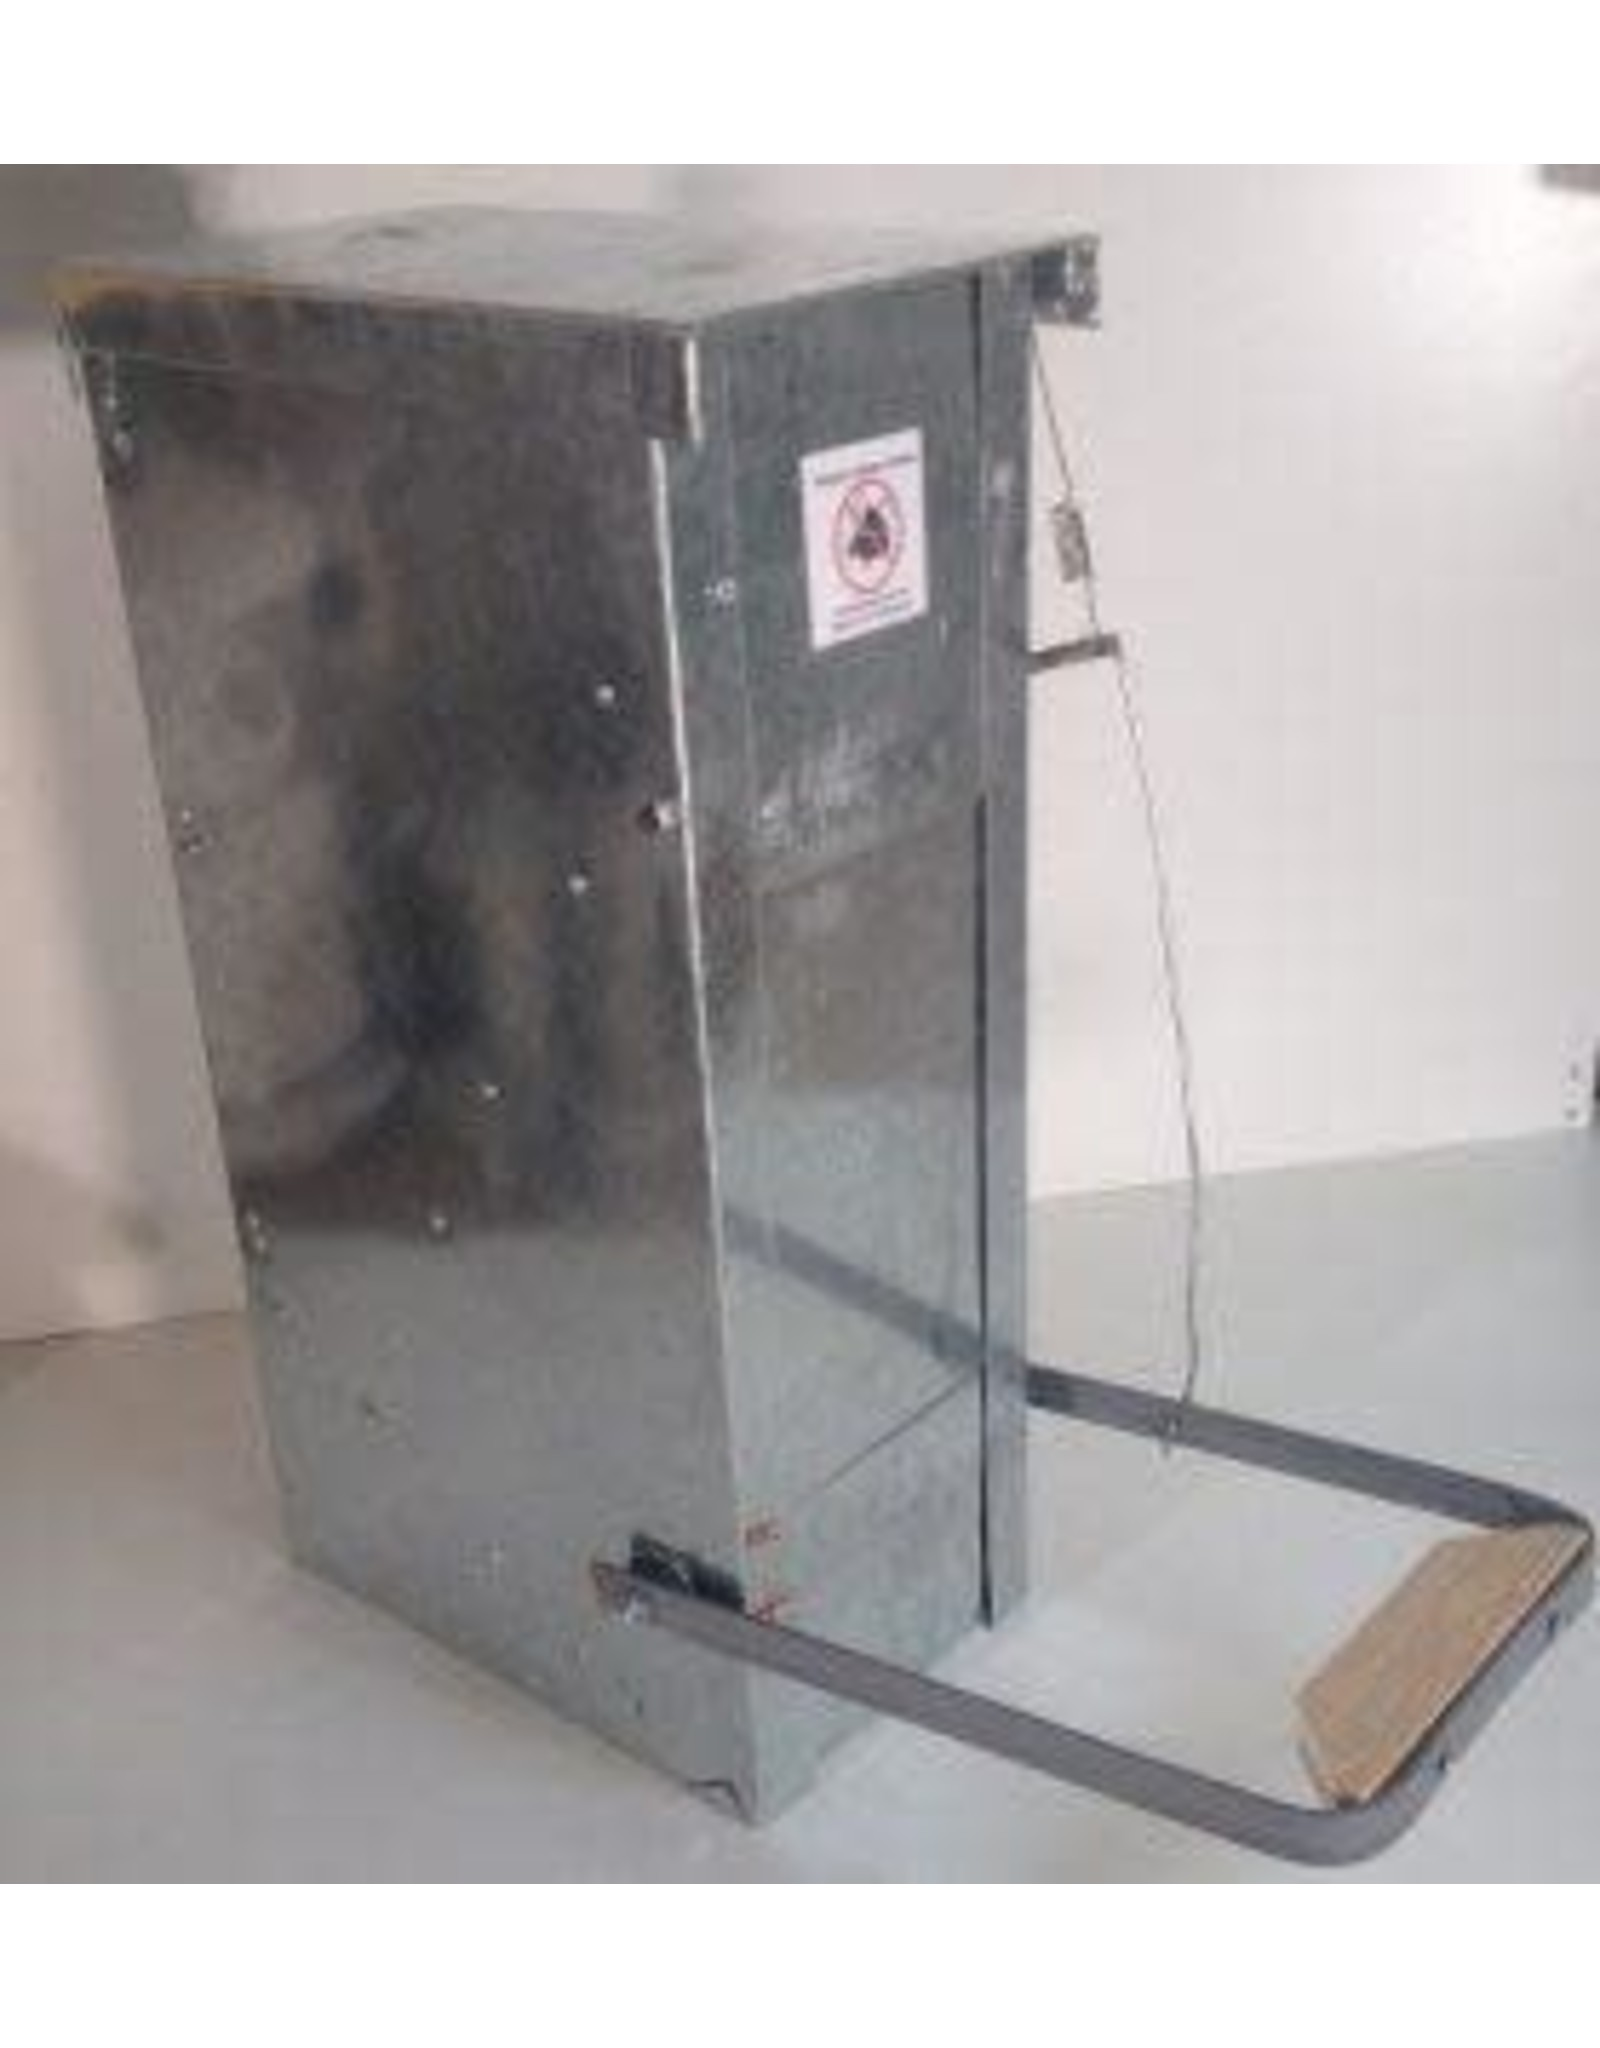 Rat Proof Feeder Rat Proof Feeder